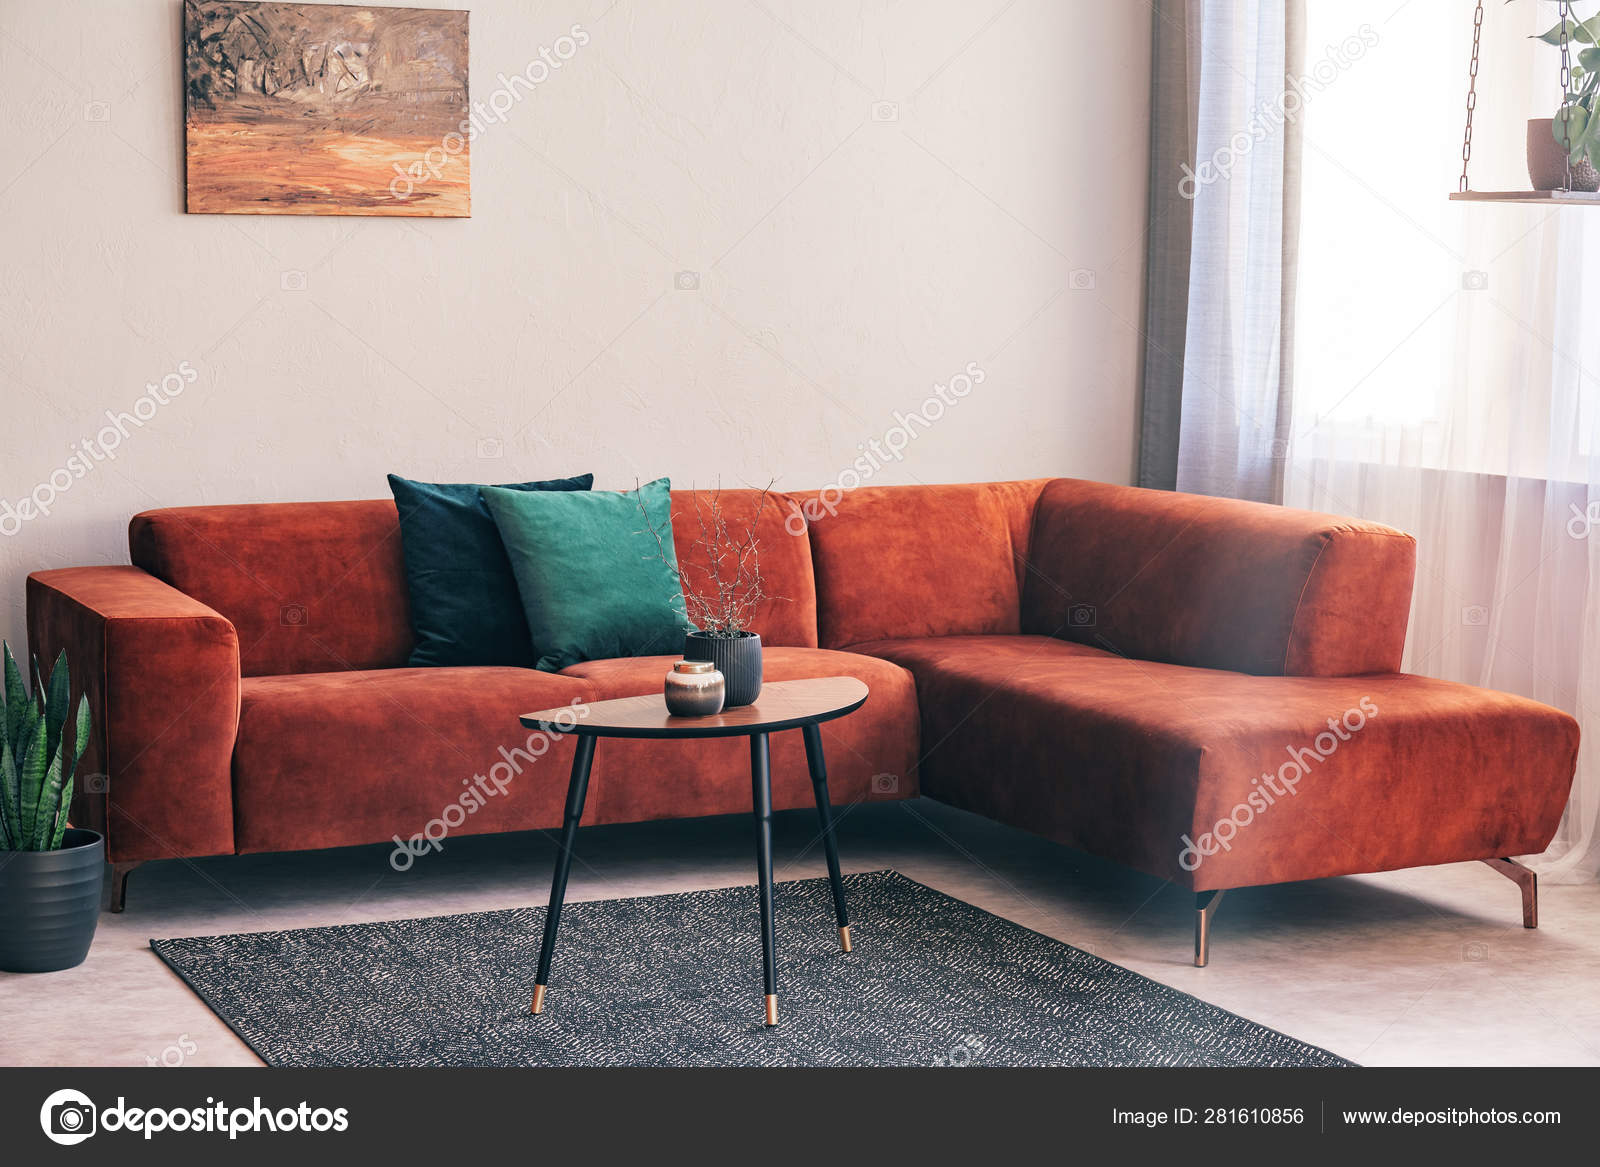 Elegant Small Wooden Coffee Table With Lowers In Front Of Big Velvet Corner Sofa With Pillows Stock Photo Image By Photographee Eu 281610856